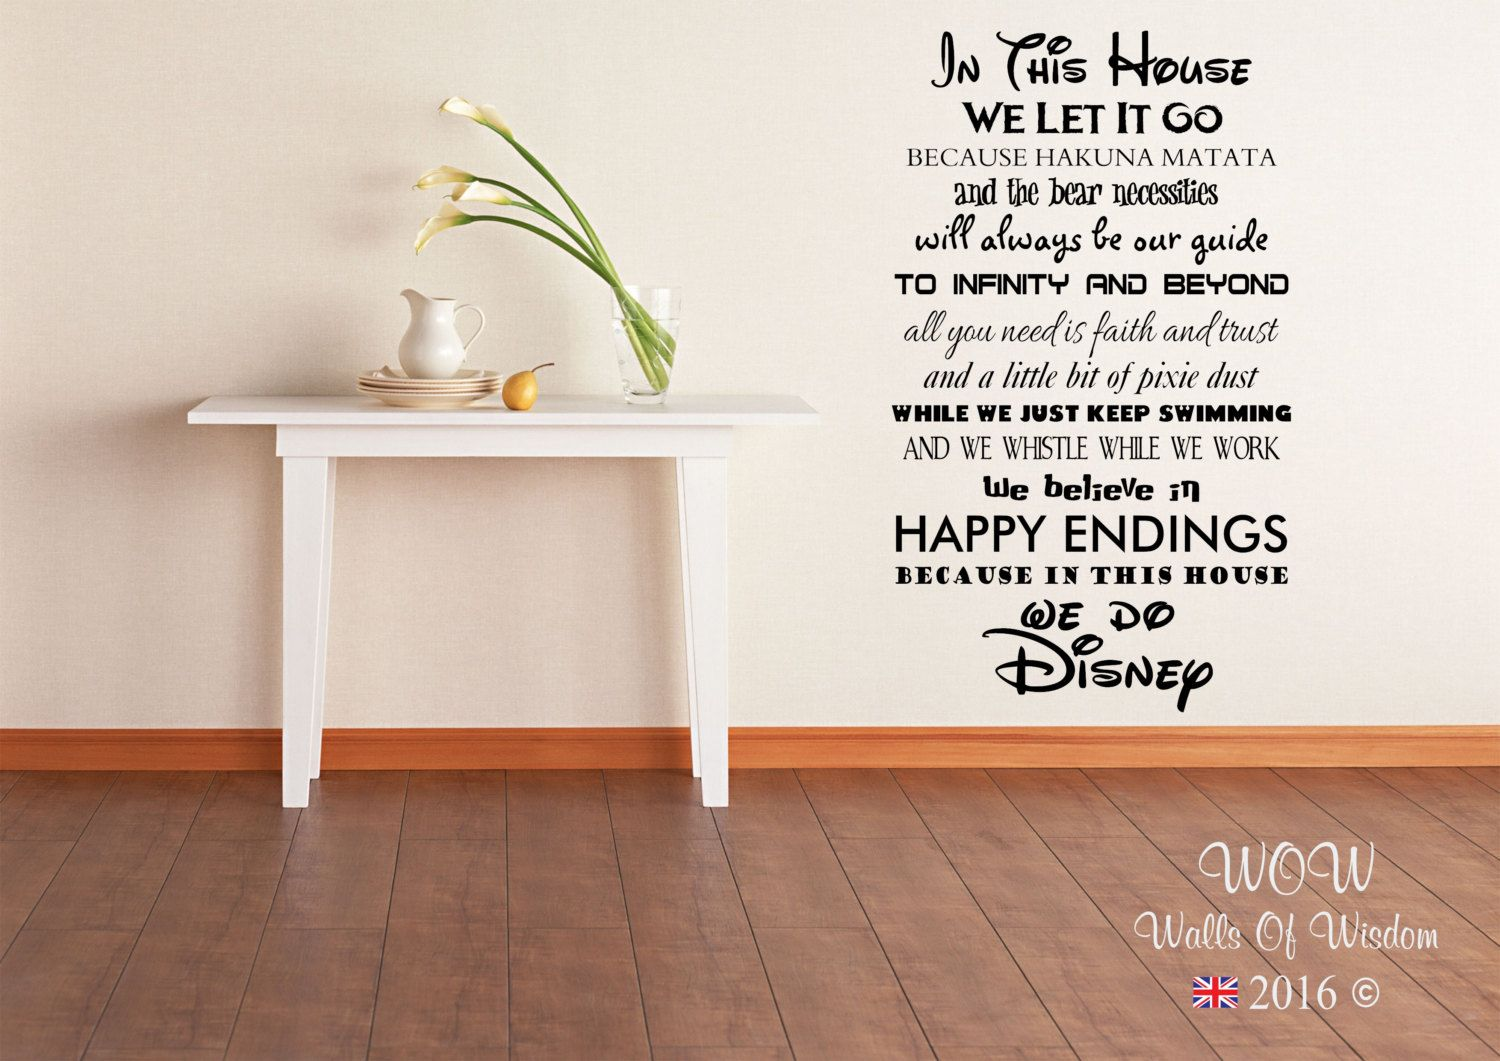 Disney In This House We Do Wall Sticker Wall Art Decal by WallsOfWisdomUK on Etsy https://www.etsy.com/listing/266664086/disney-in-this-house-we-do-wall-sticker